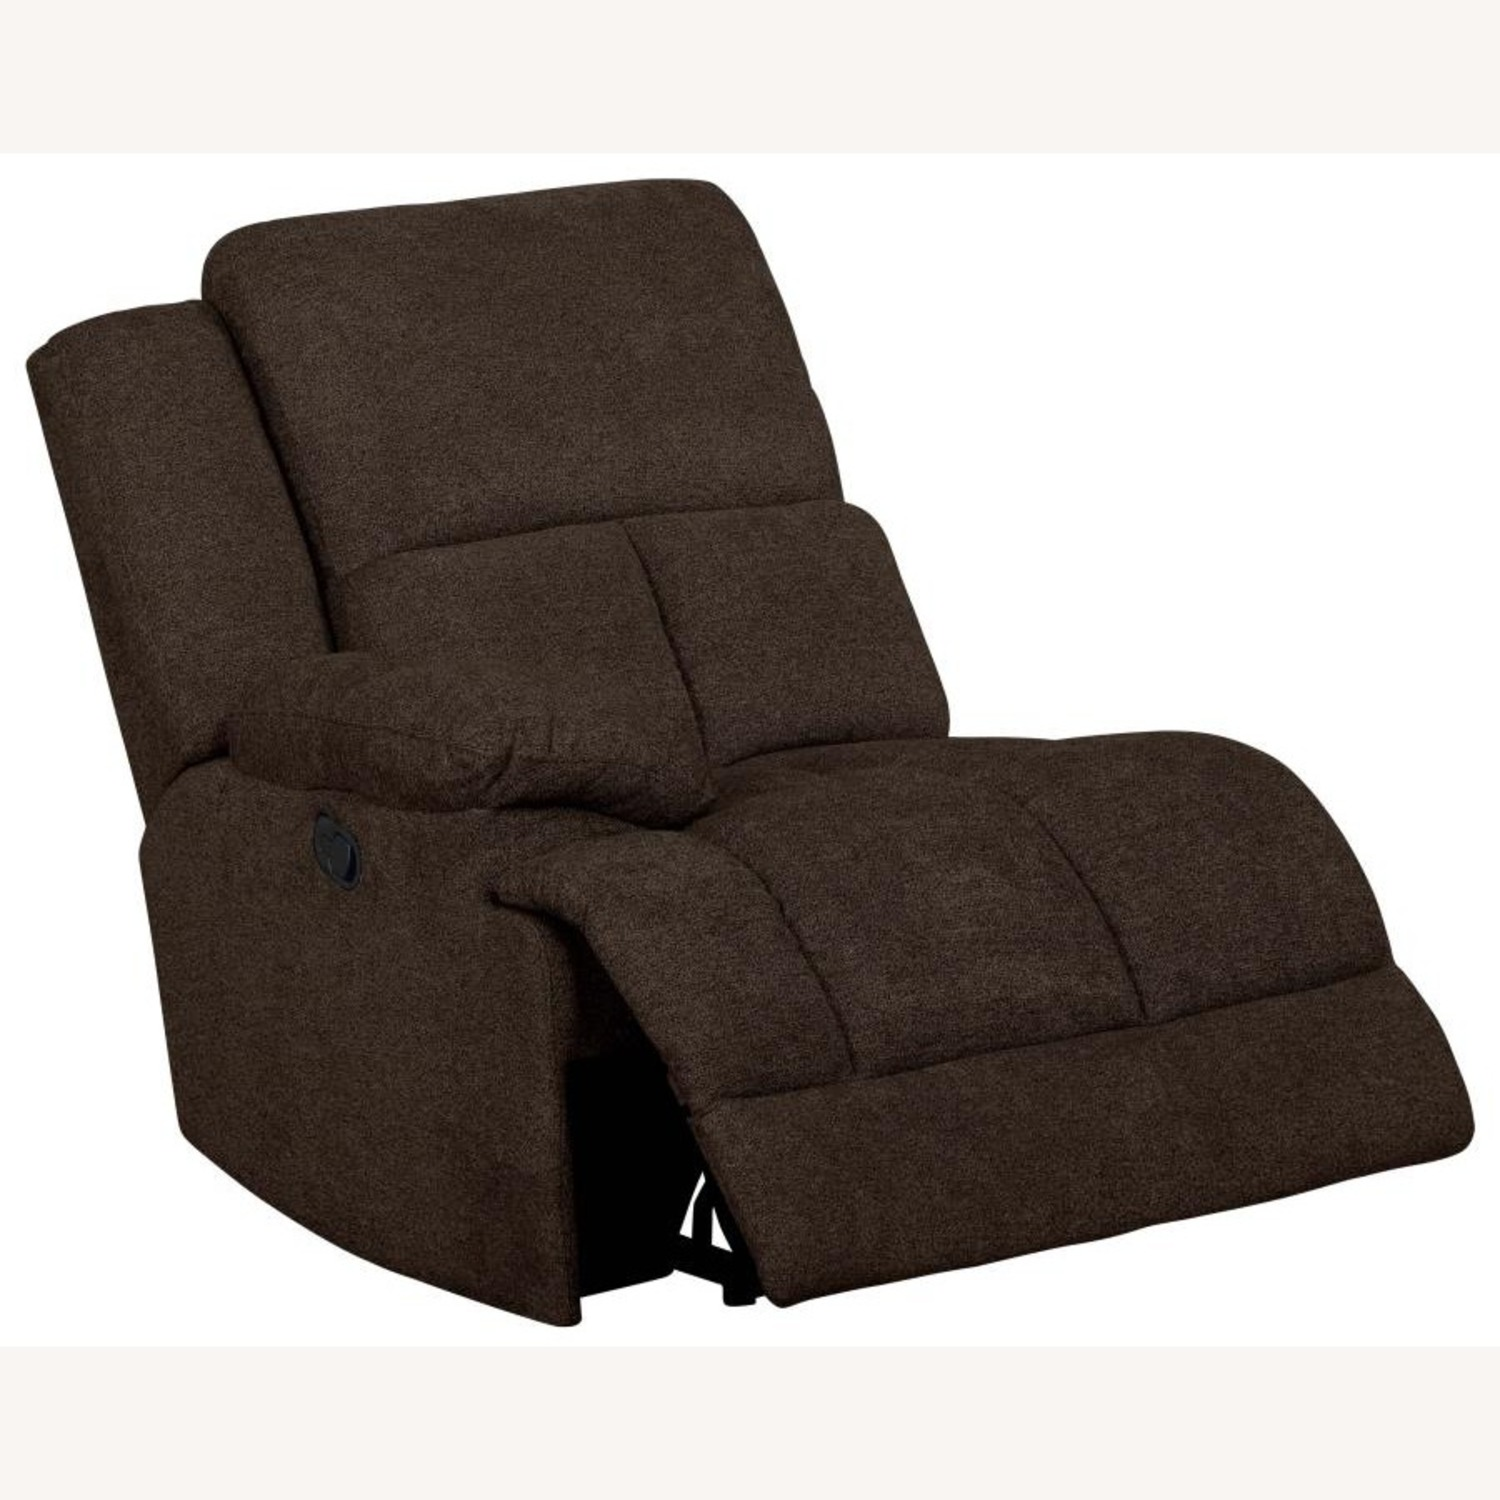 Motion Sectional In Brown Performance Fabric - image-1